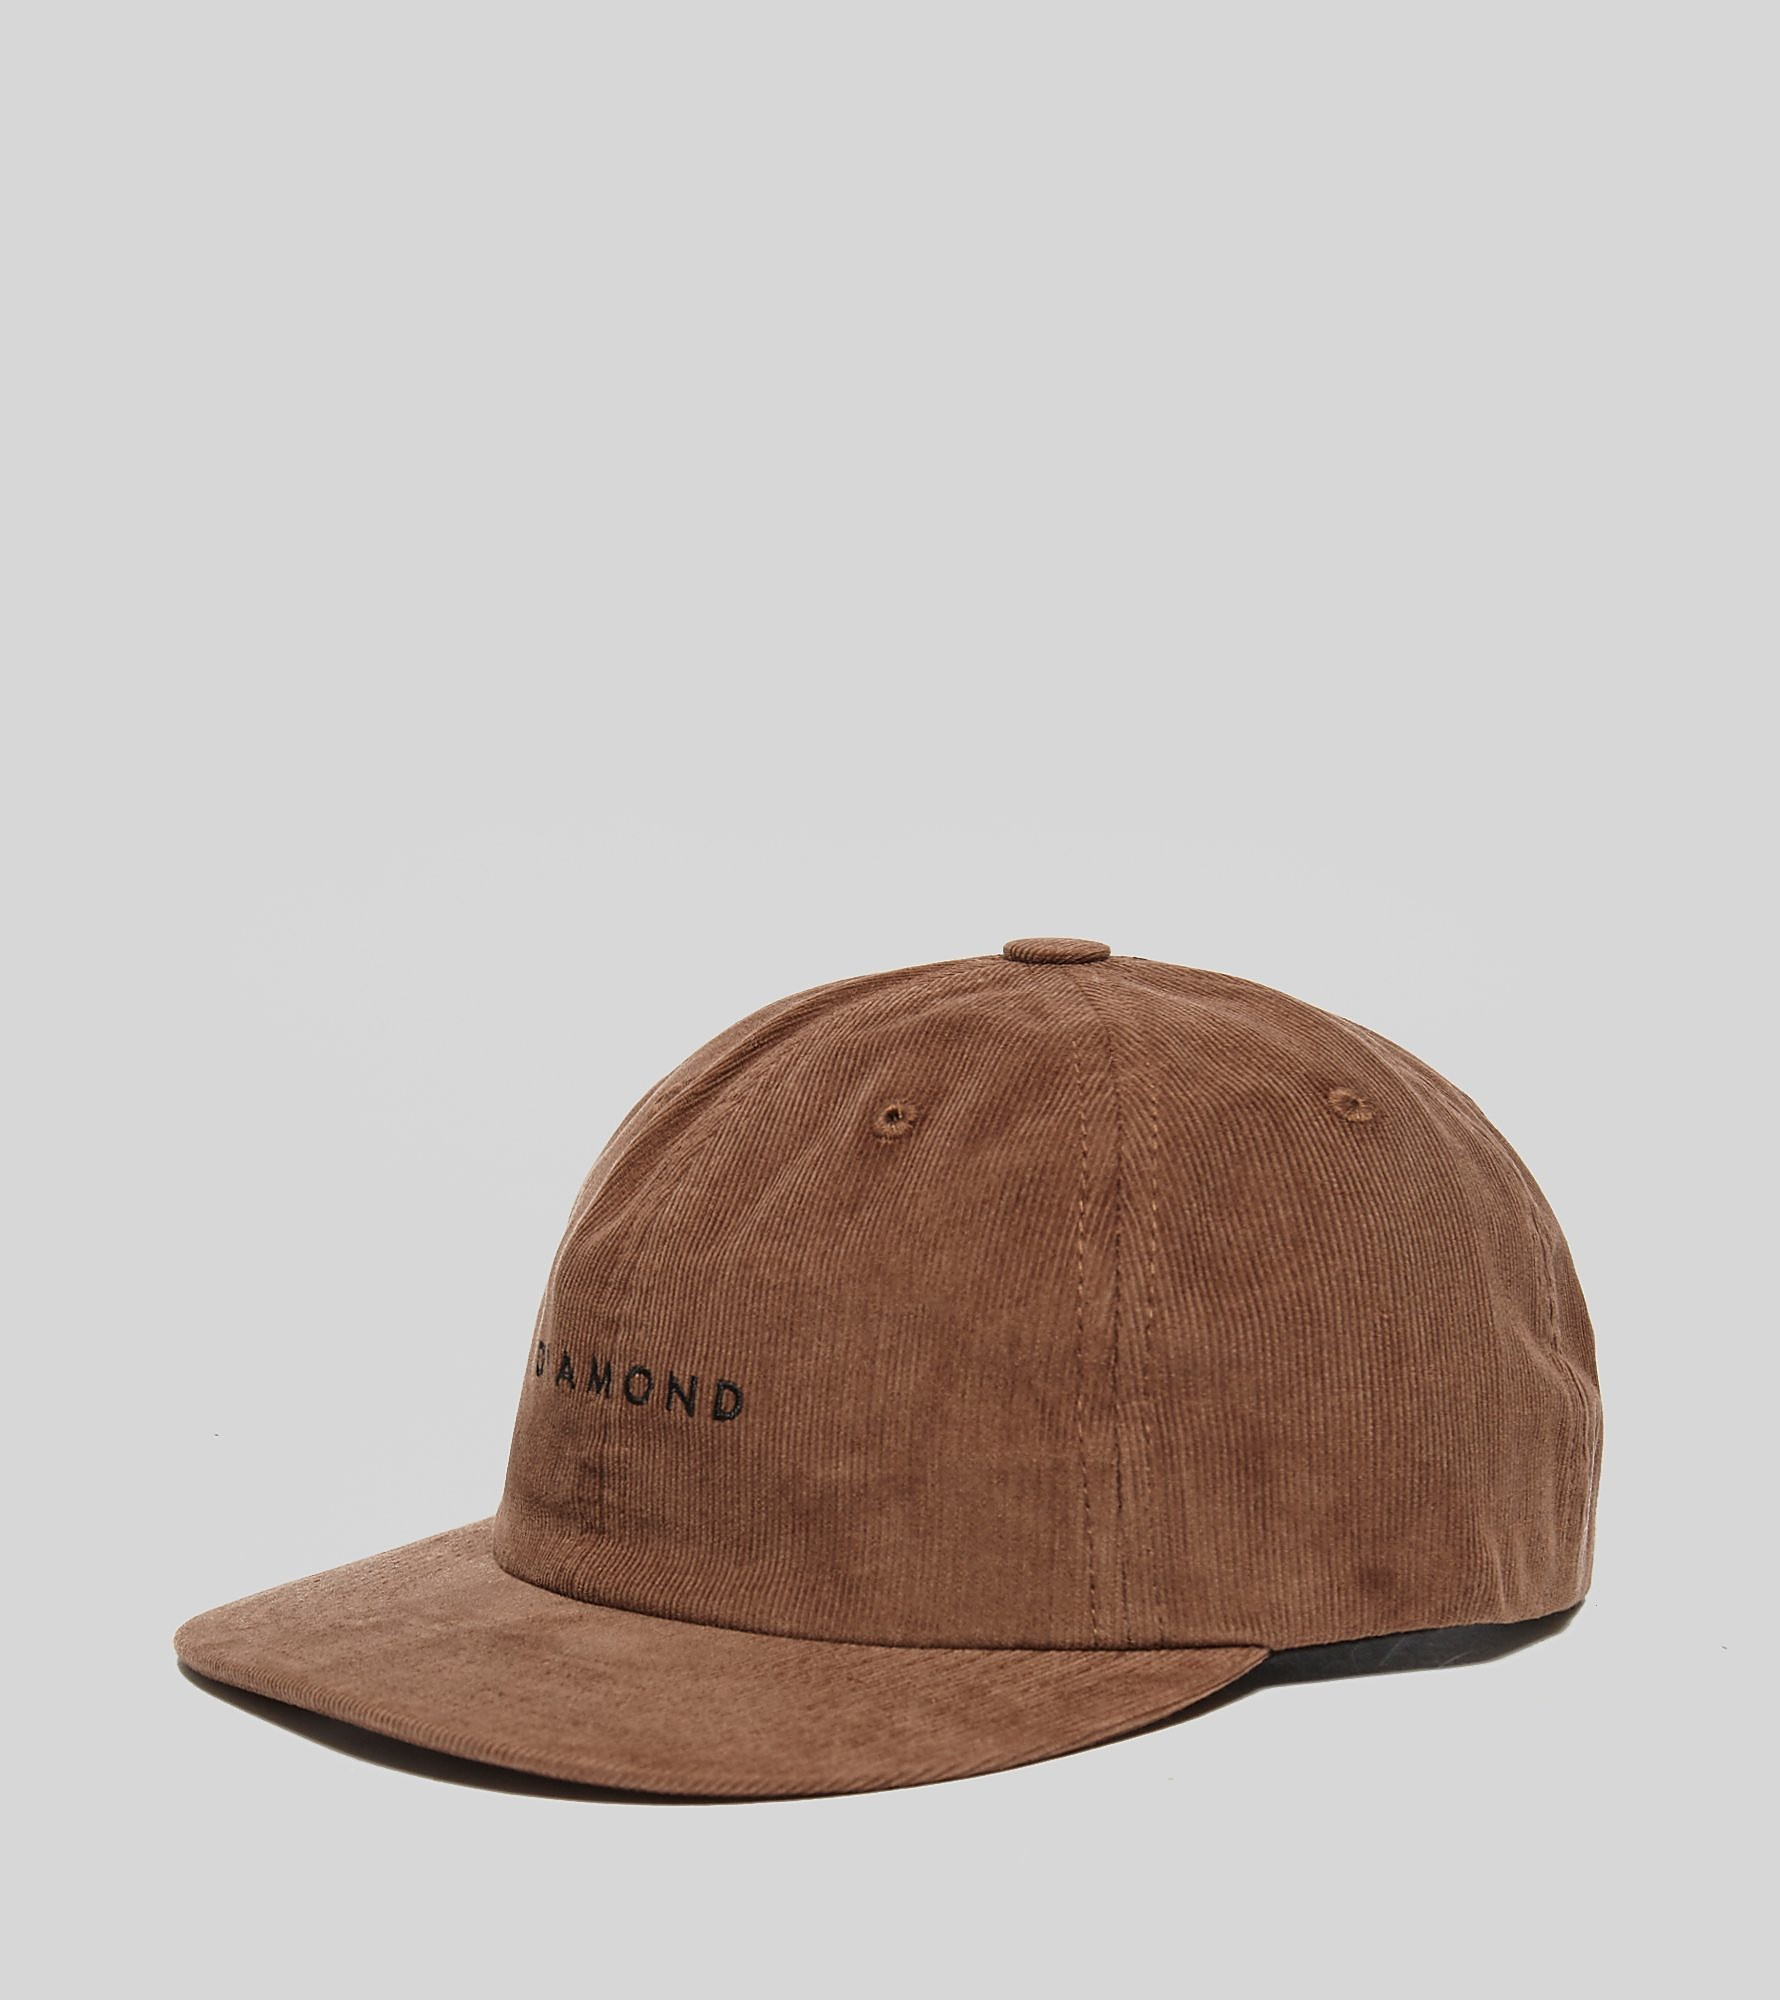 Diamond Supply Leeway 5 Panel Cap